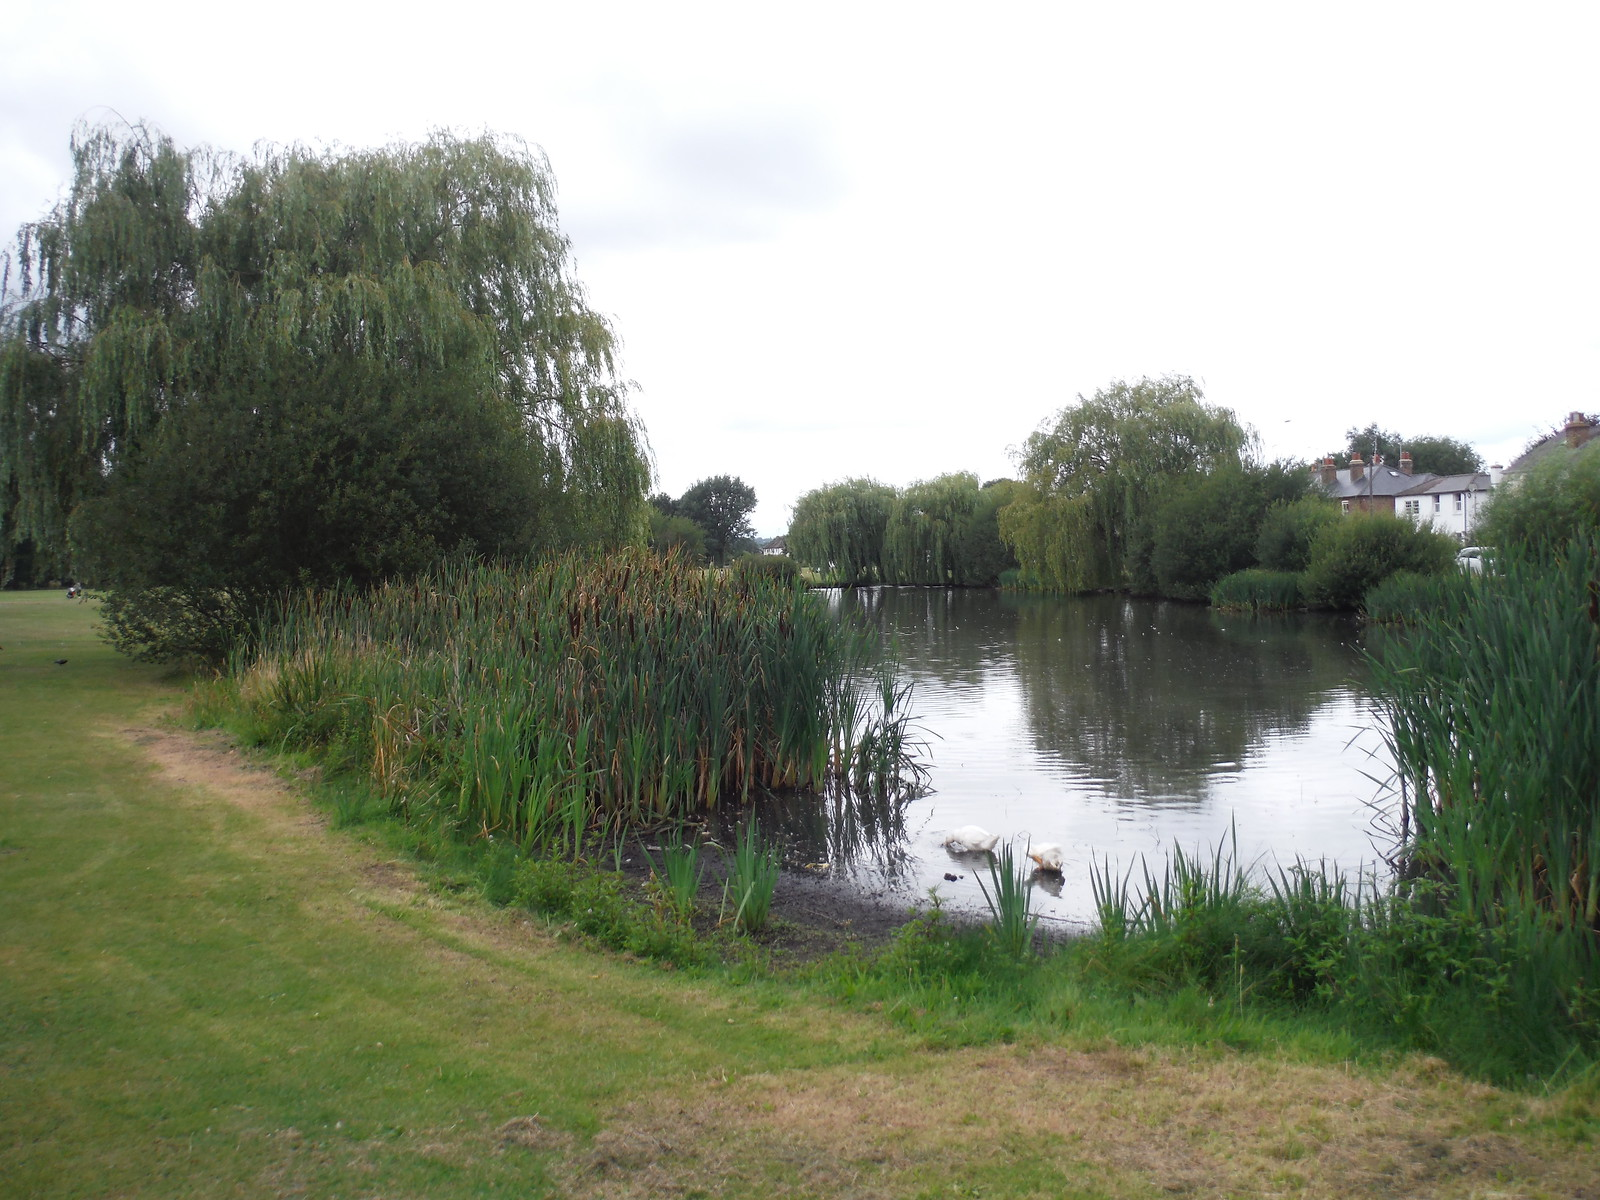 Prince of Wales Pond, West End SWC Short Walk 17 - Oxshott Heath, Esher and West End Commons